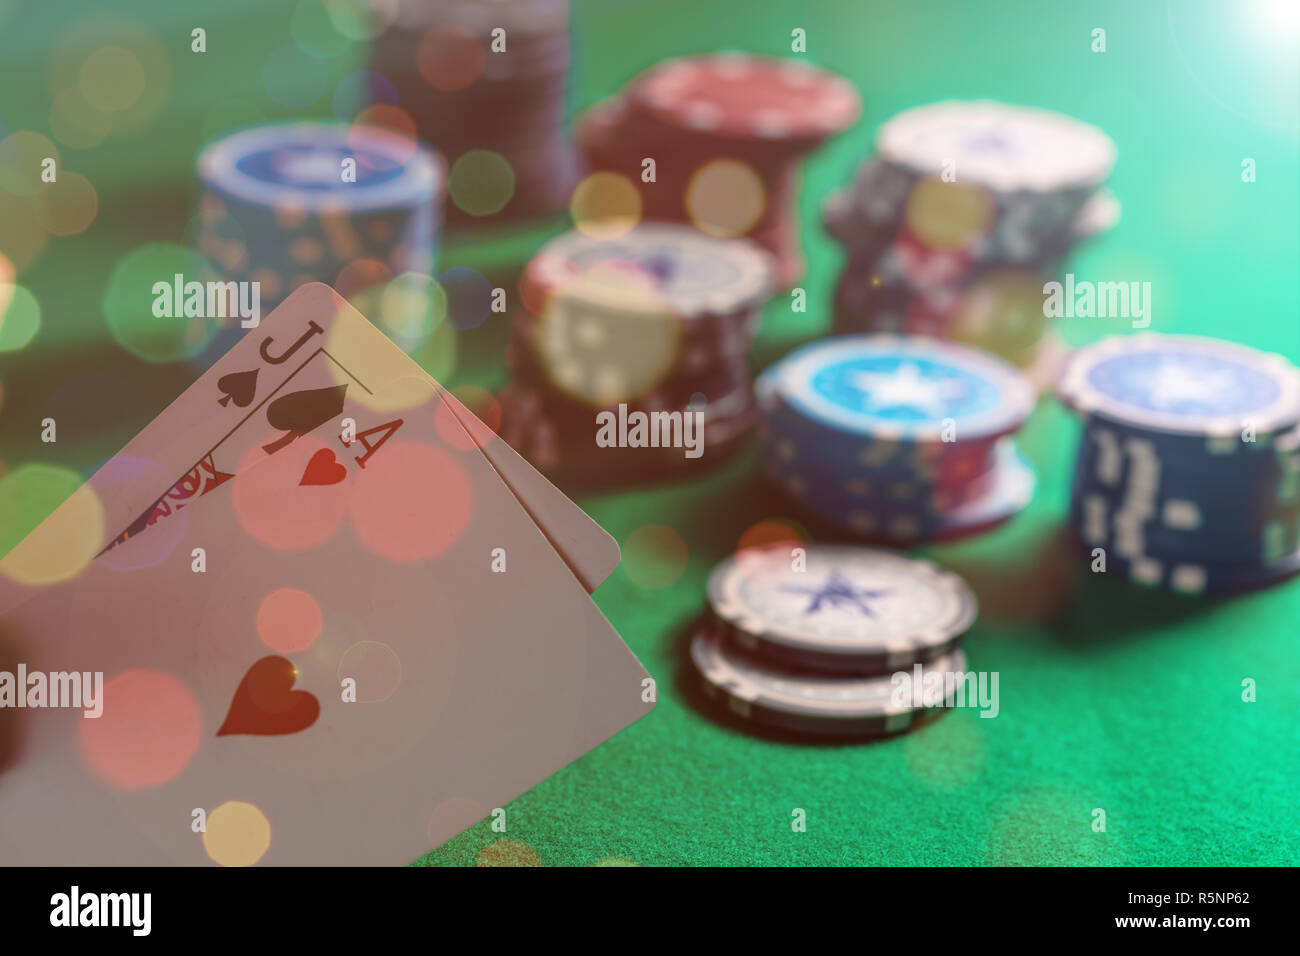 Casino, gambling concept. Blackjack and poker chips on green felt bokeh background - Stock Image